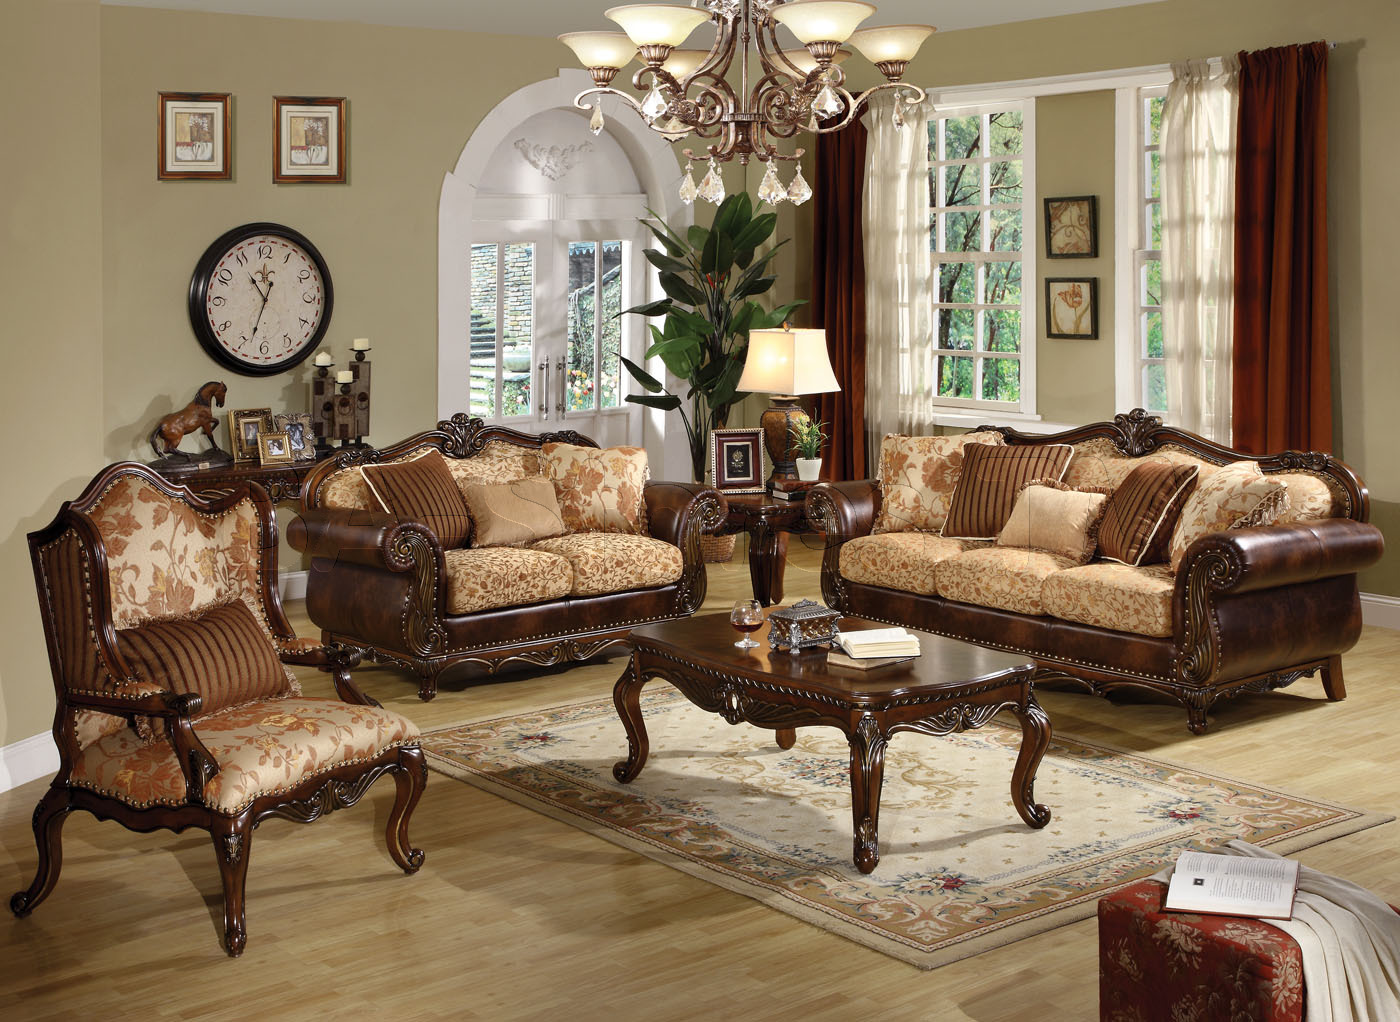 Living Room Ideas With Dark Wood Furniture Interiors Indian Style Best For Home Traditional Classic Styles Elegant Design Antique Lighting Hanging And Bamboo